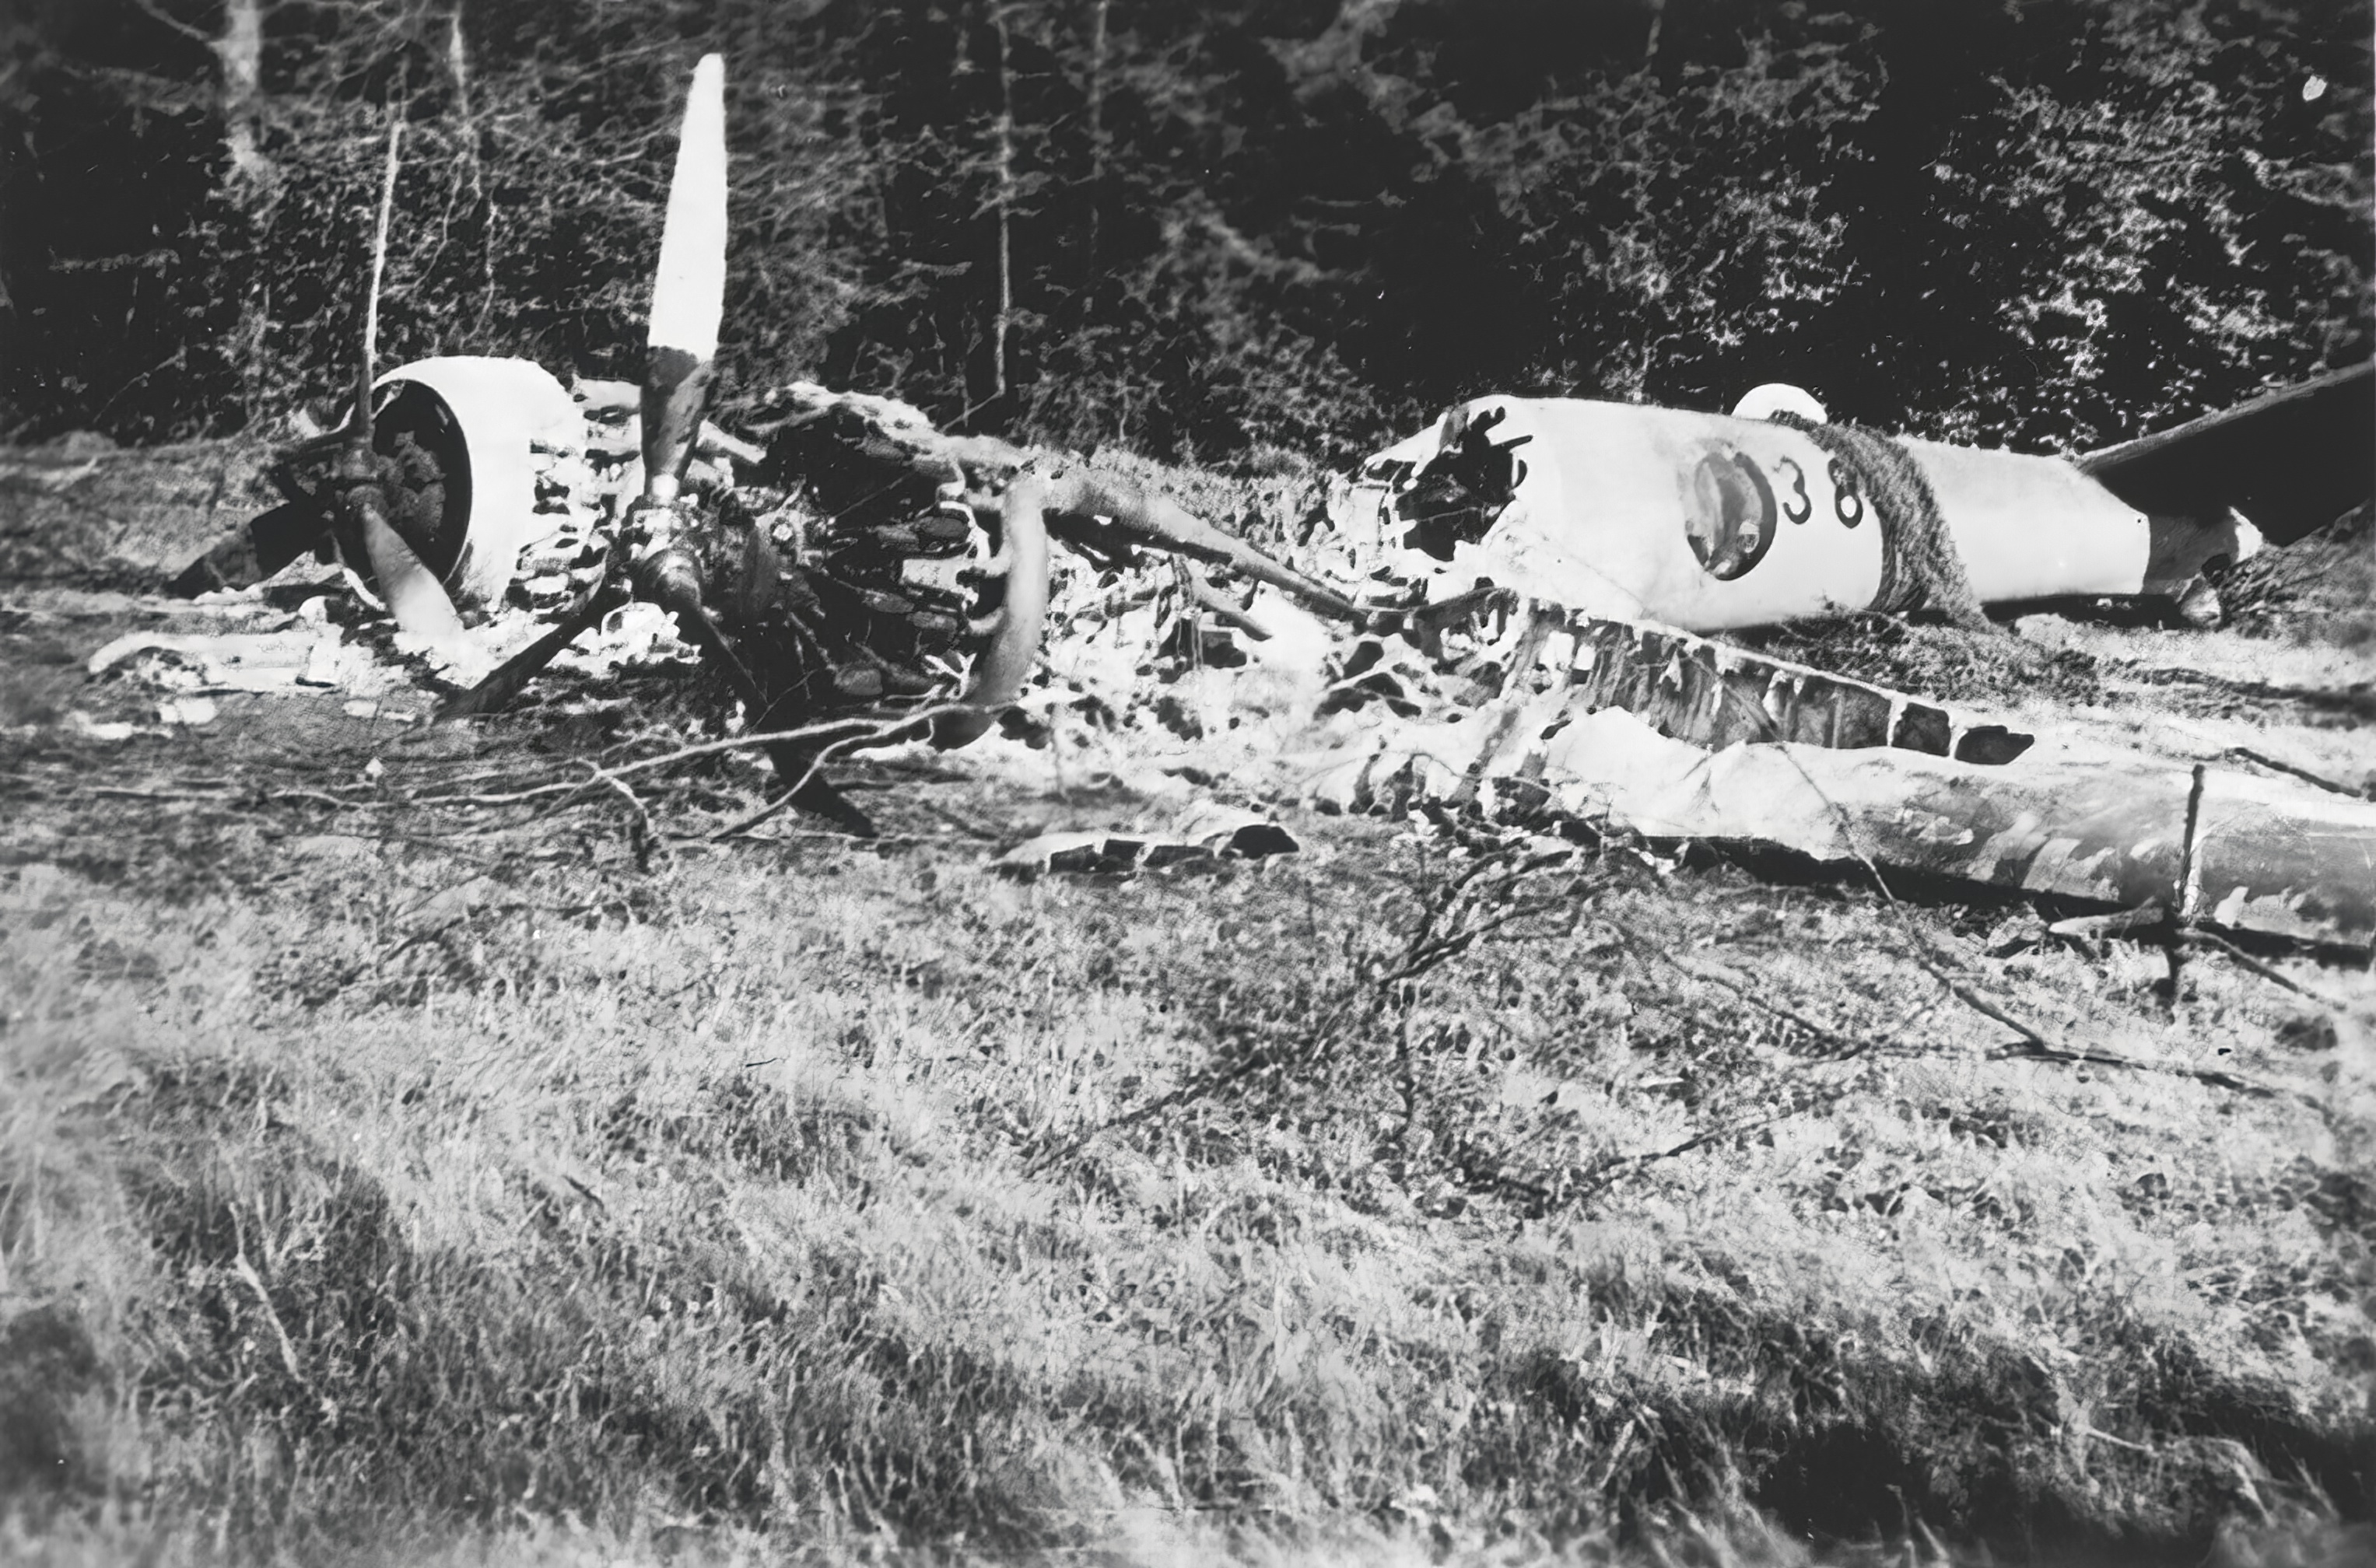 French Airforce Potez 63.11 destroyed on the ground May 1940 NIOD